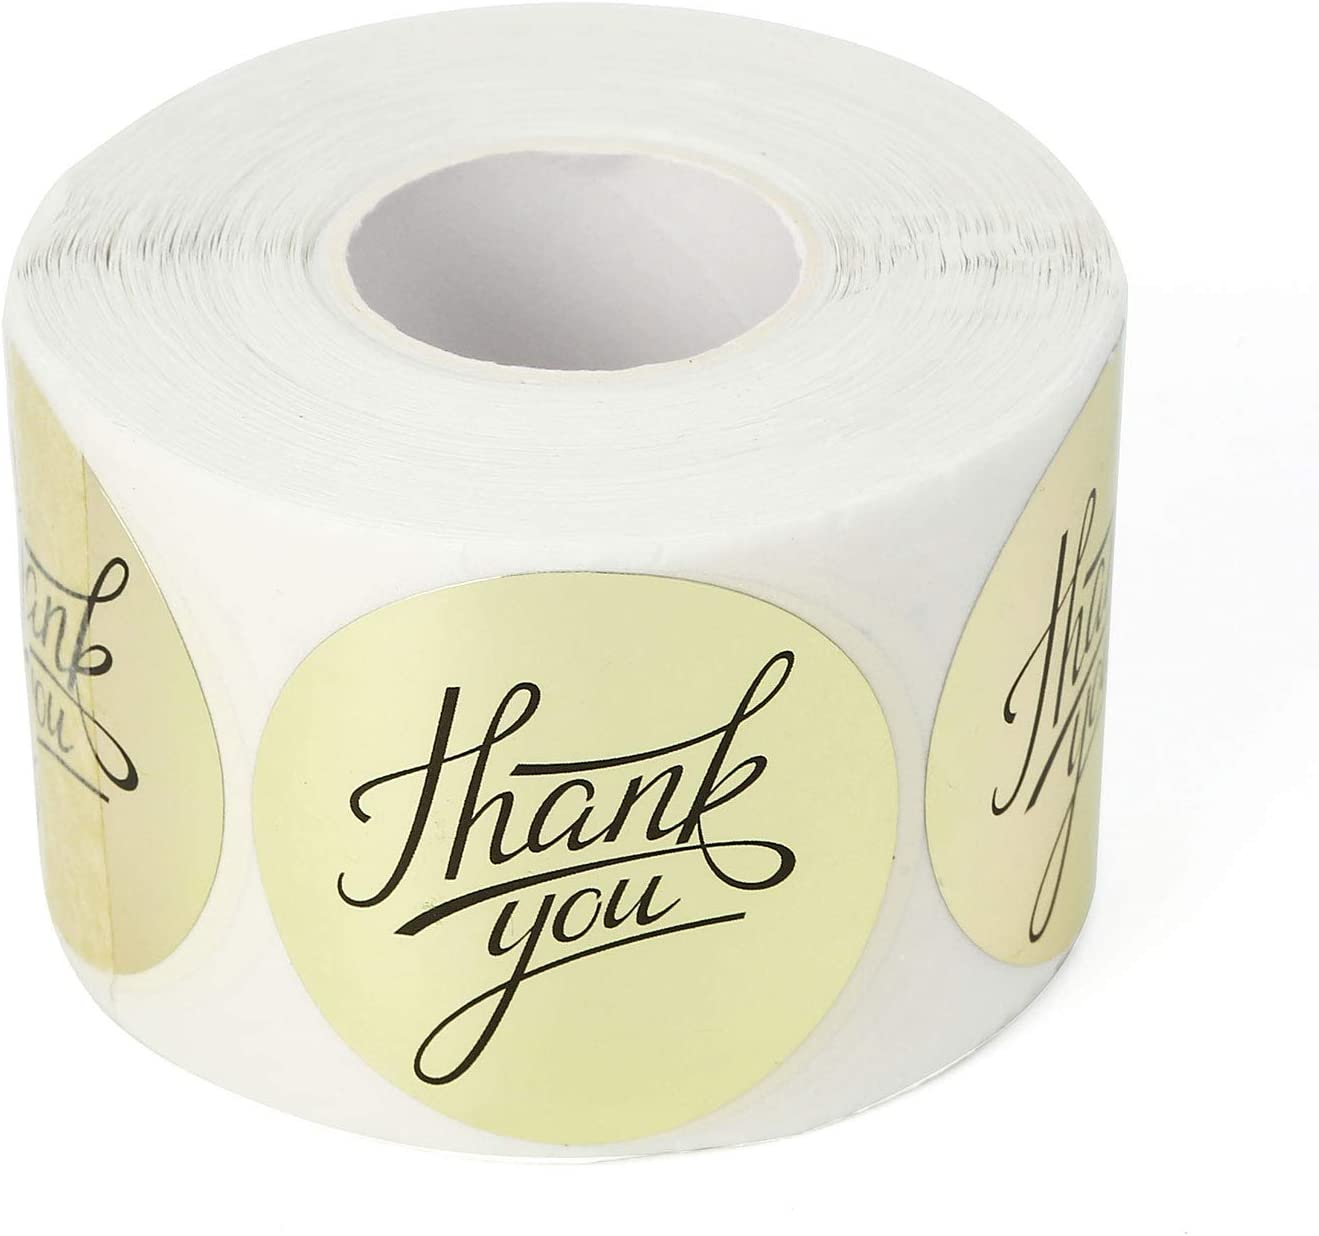 Party 1.5 Inch Thank You Stickers for Gifts 500 Pieces, Red Heart Plastic Thank You Labels by Crystal Lemon Wedding